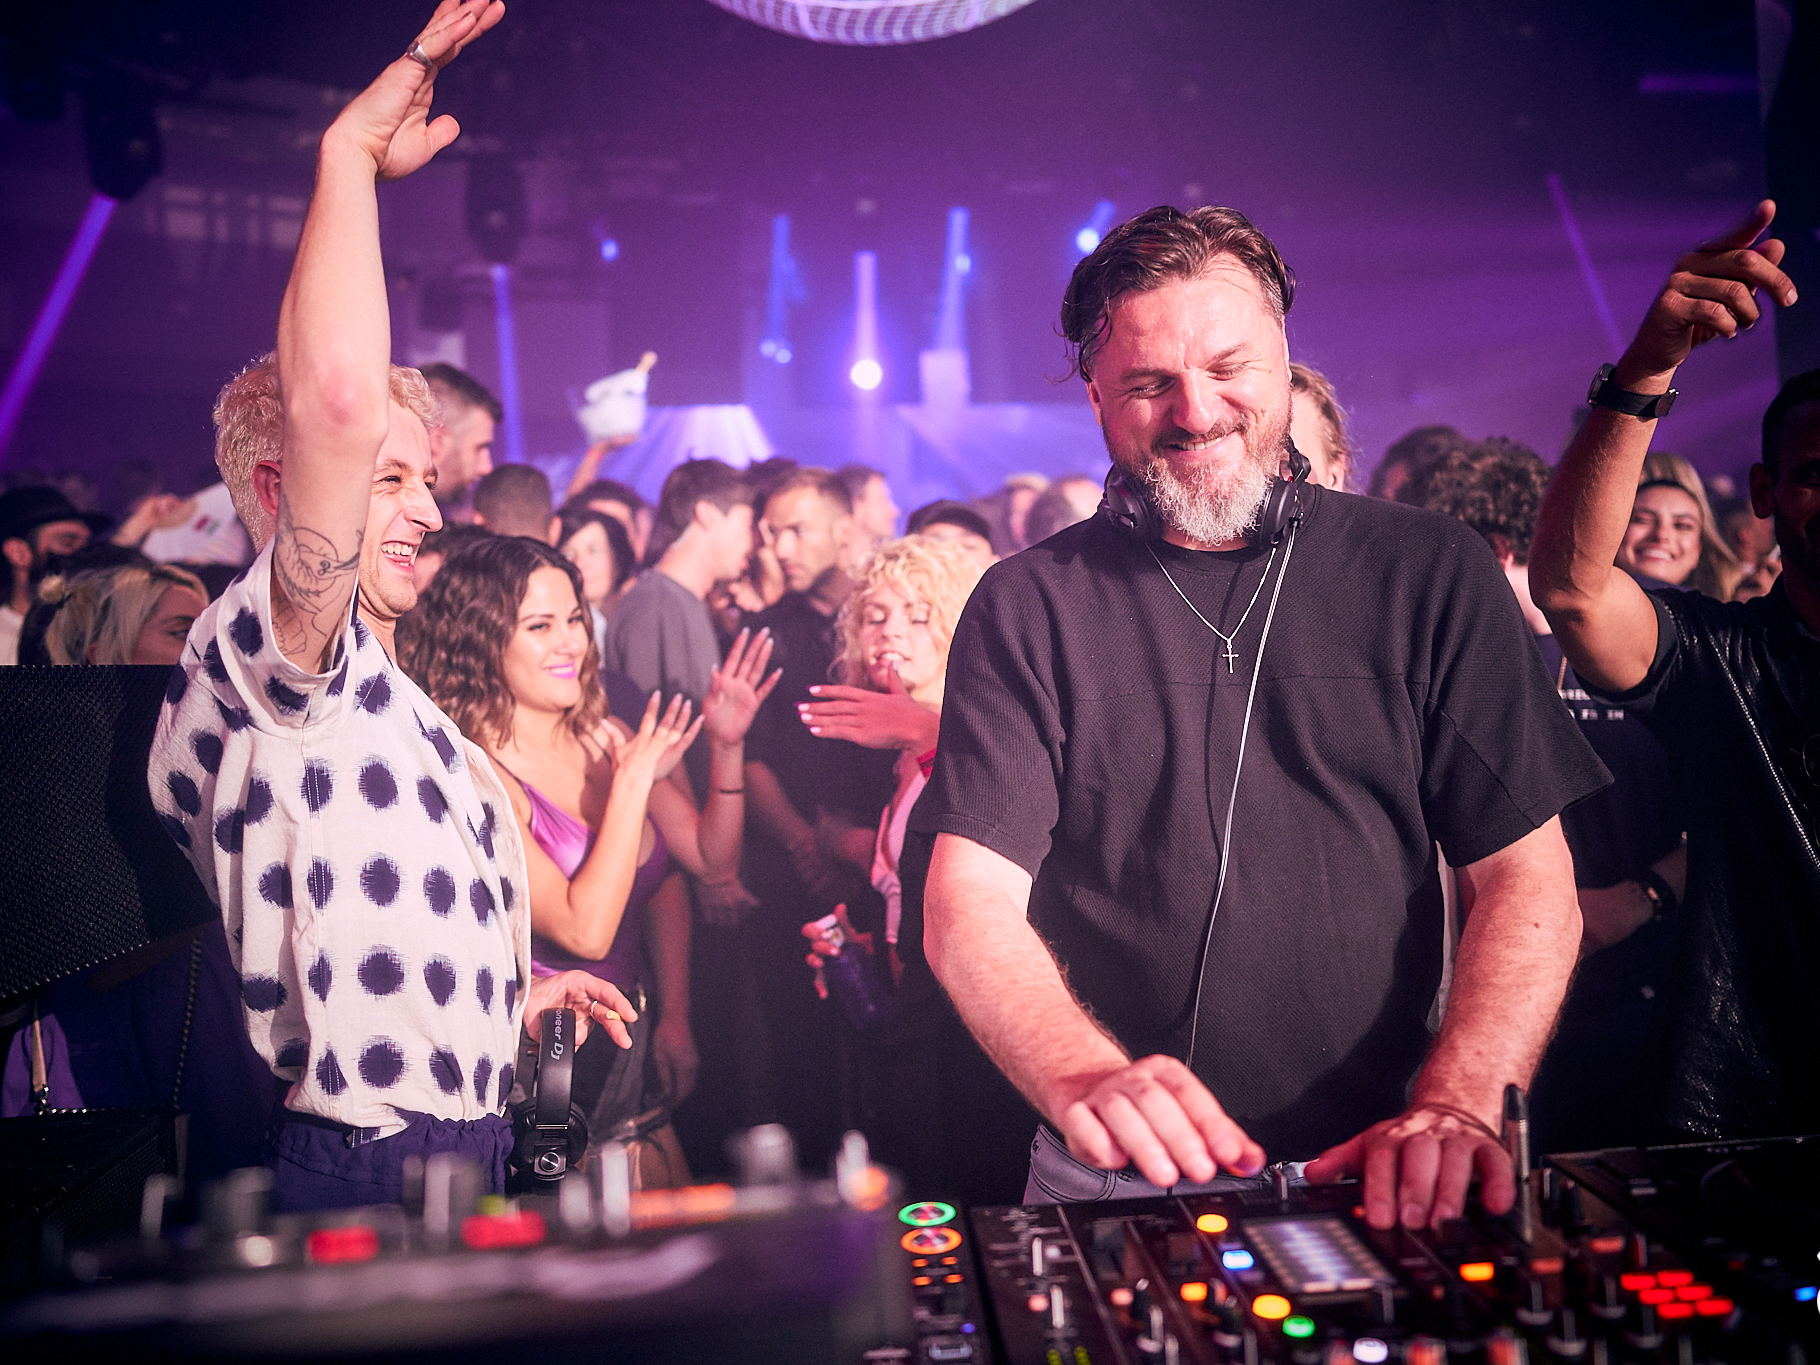 Solomun playing with denis sulta at Solomun +1